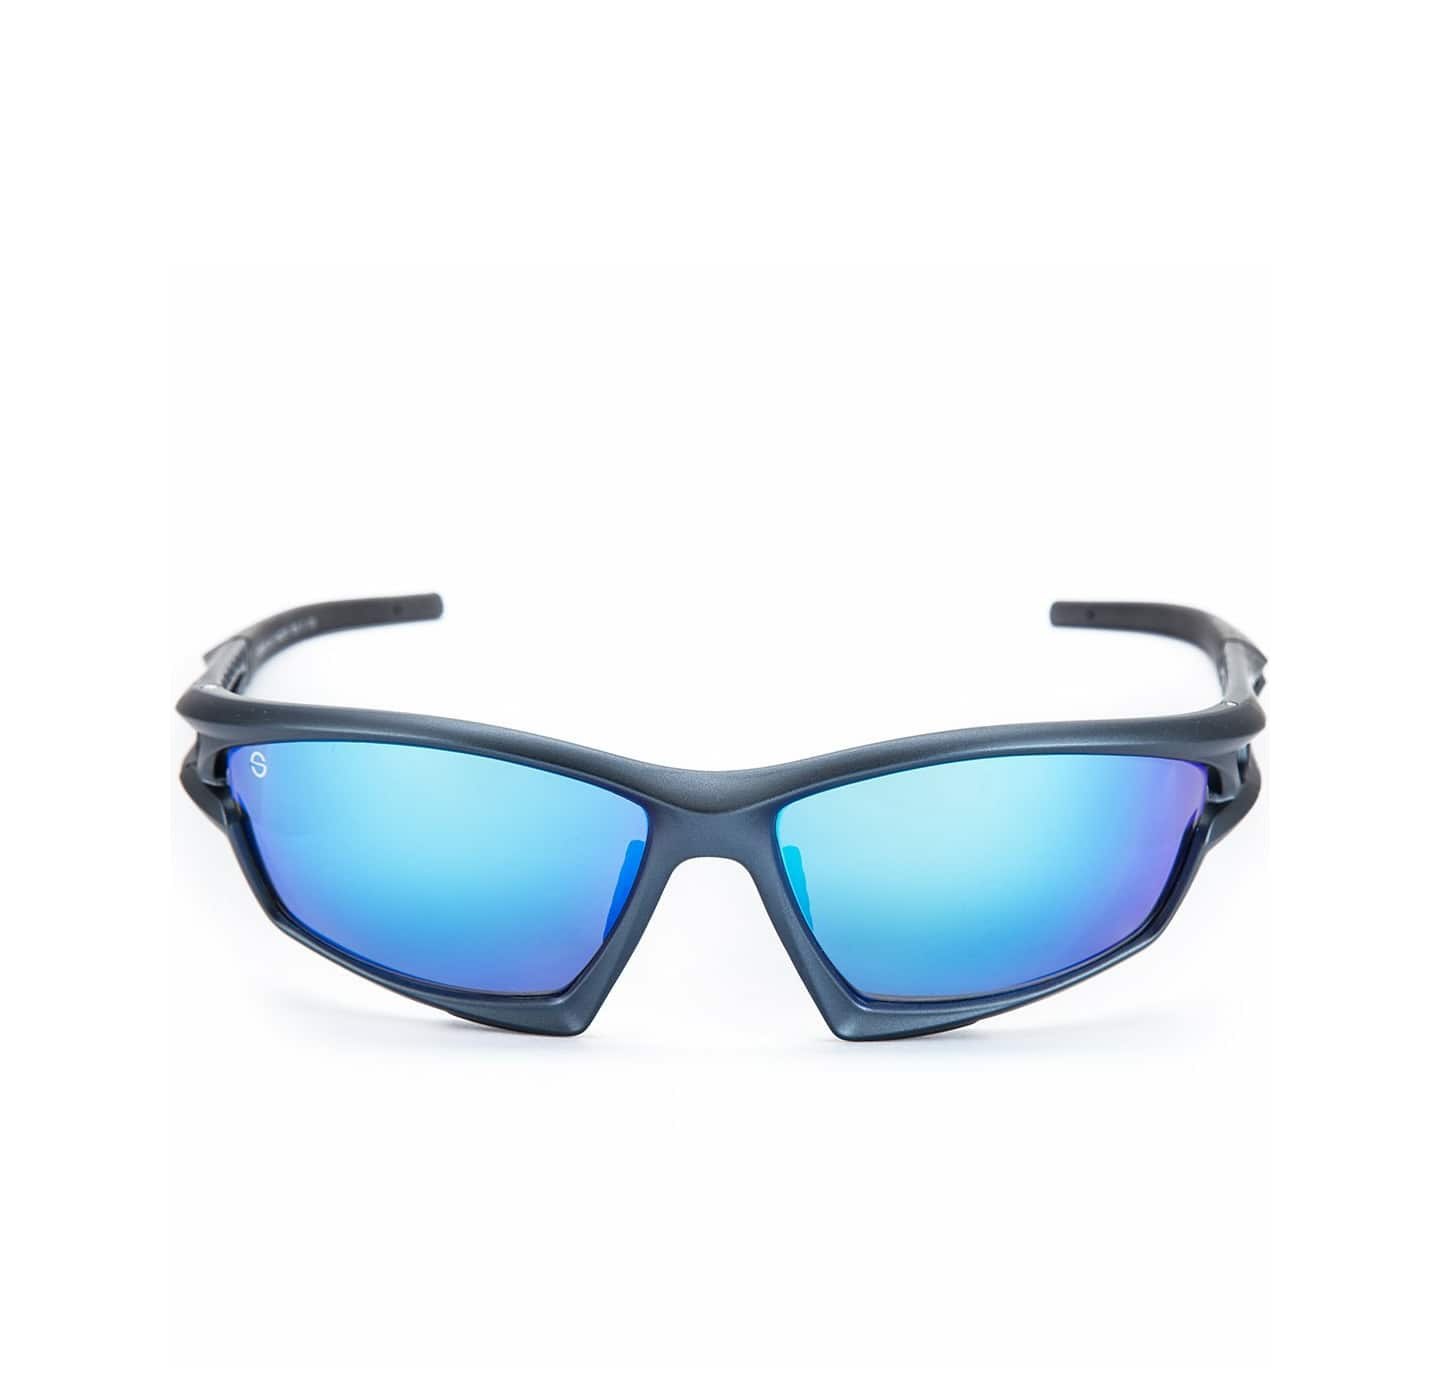 Shieldo Polarized Sports Sunglasses For Men And Women Running Cycling Fishing, Mirrored Integrated Polarized Lens Unbreakable Frame- $9.99 AC @Amazon